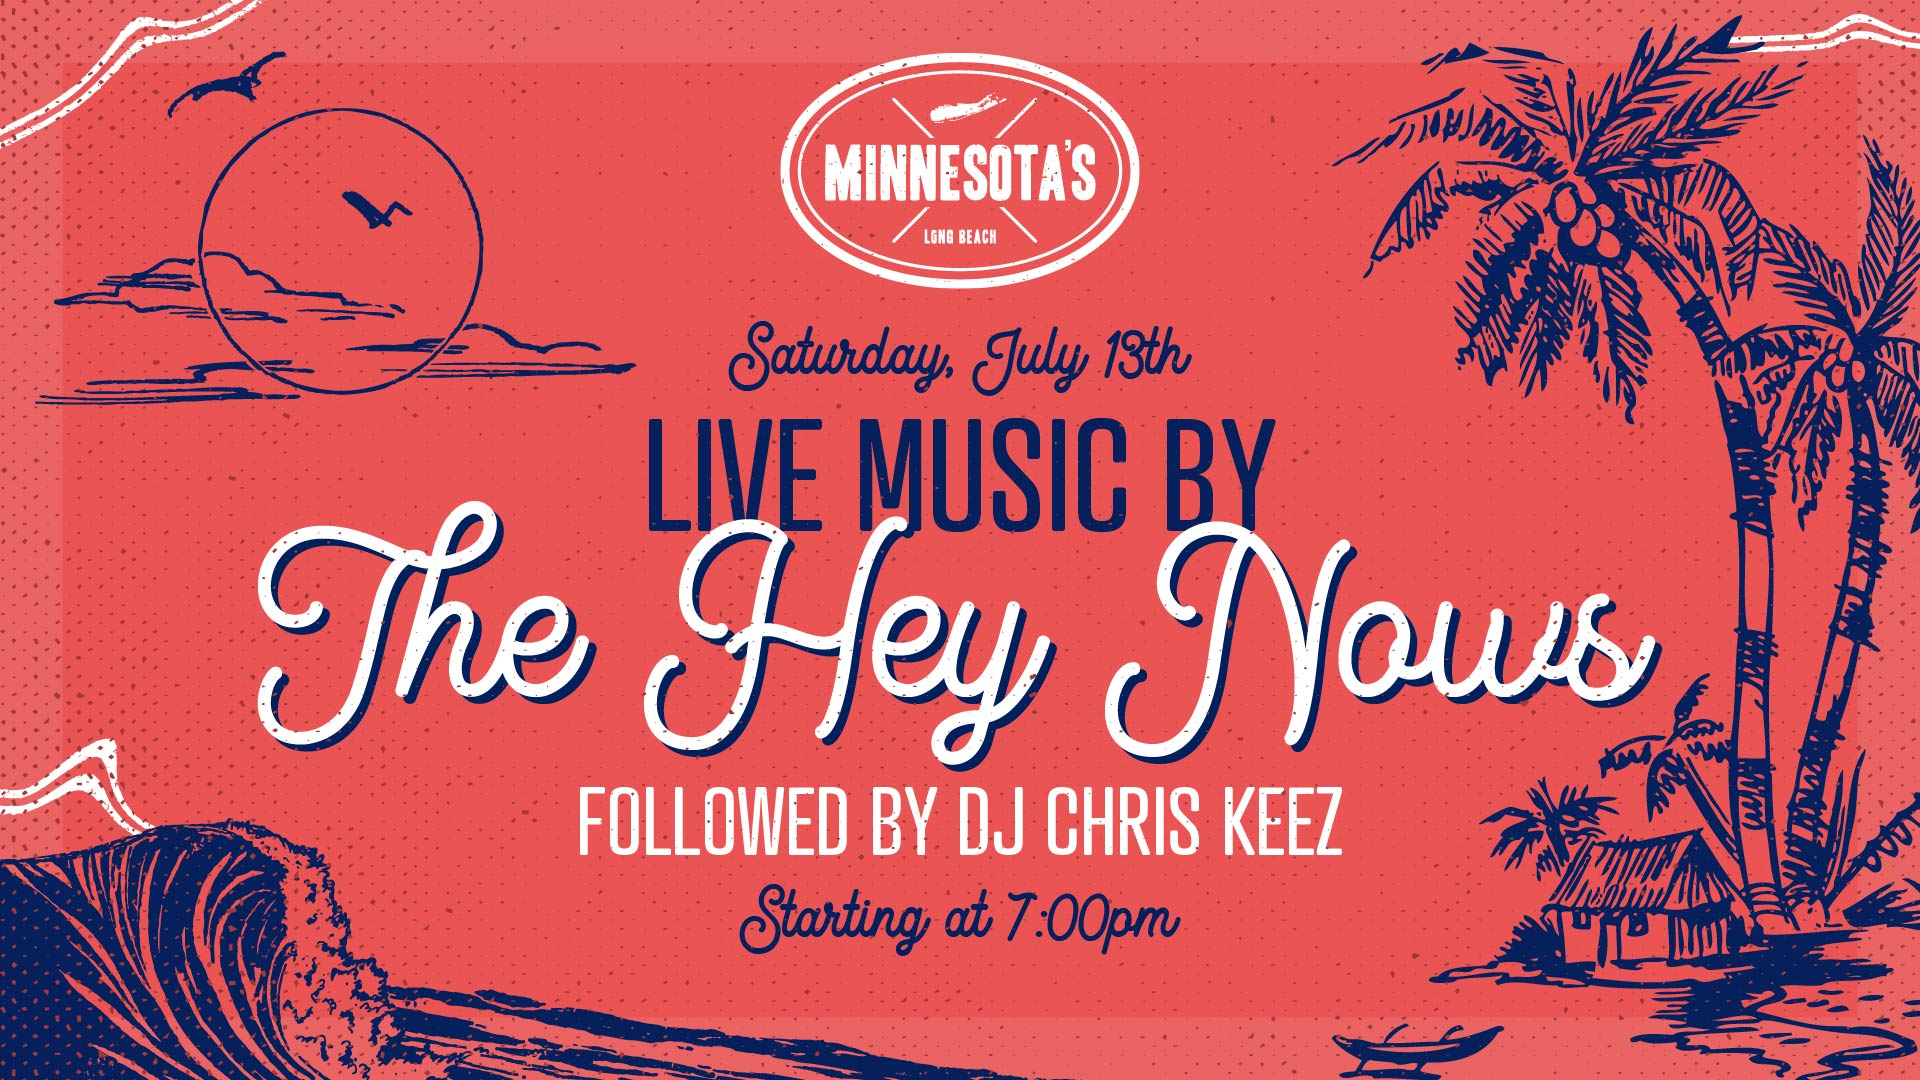 flyer for live music by the hey nows followed by dj chris keez at minnesotas on july 13th starting at 7pm